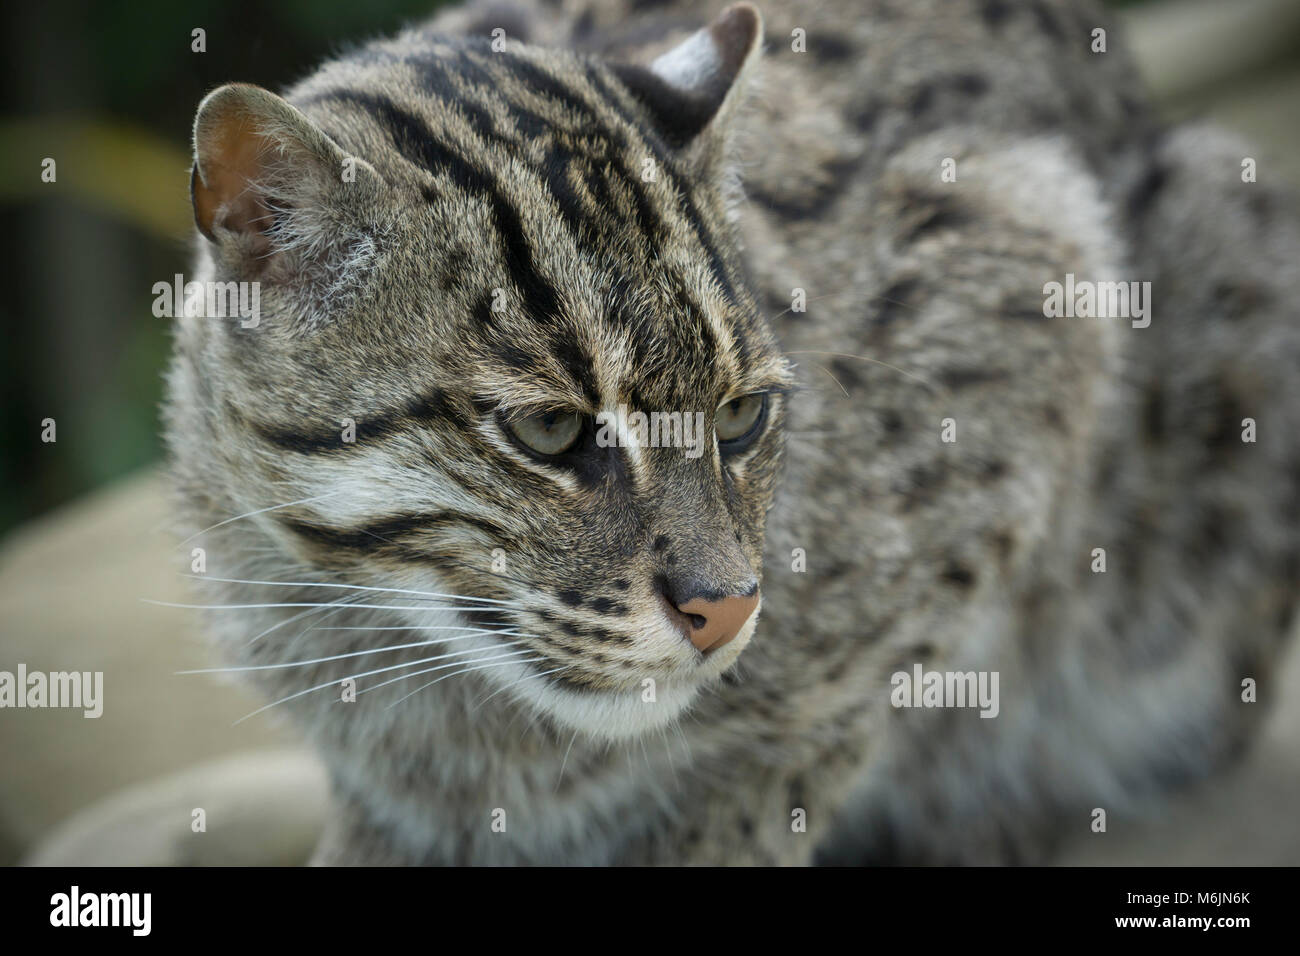 Scotland - Five Sisters Zoo, Polbeth, Livingston. Asian fishing cat, Prionailurus viverrinus. - Stock Image